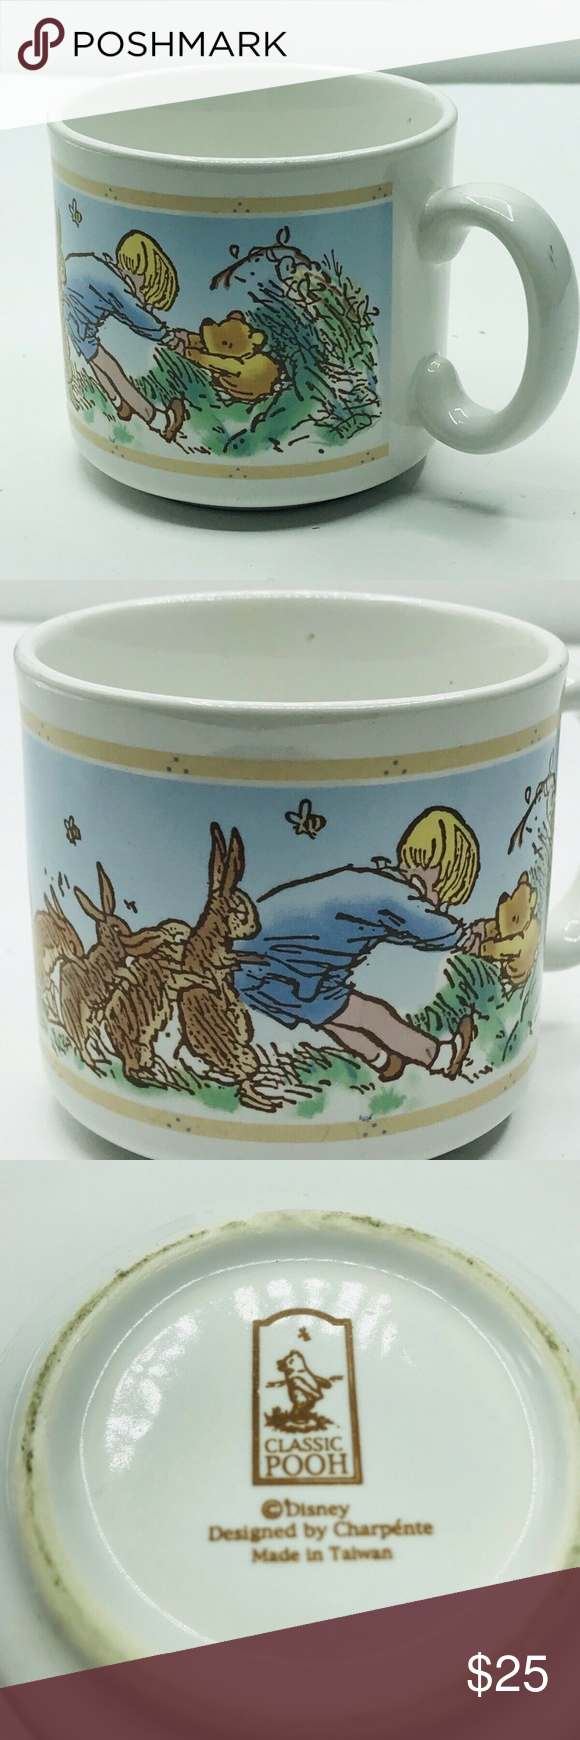 Disney Classic Pooh Winnie The Pooh Coffee Mug Cup Preowned GUC Disney collectible Classic Pooh Winnie The Pooh Coffee Mug Cup Charpente Christopher Robin. Condition is Used. Disney Dining Drinkware #disneycoffeemugs Disney Classic Pooh Winnie The Pooh Coffee Mug Cup Preowned GUC Disney collectible Classic Pooh Winnie The Pooh Coffee Mug Cup Charpente Christopher Robin. Condition is Used. Disney Dining Drinkware #disneycoffeemugs